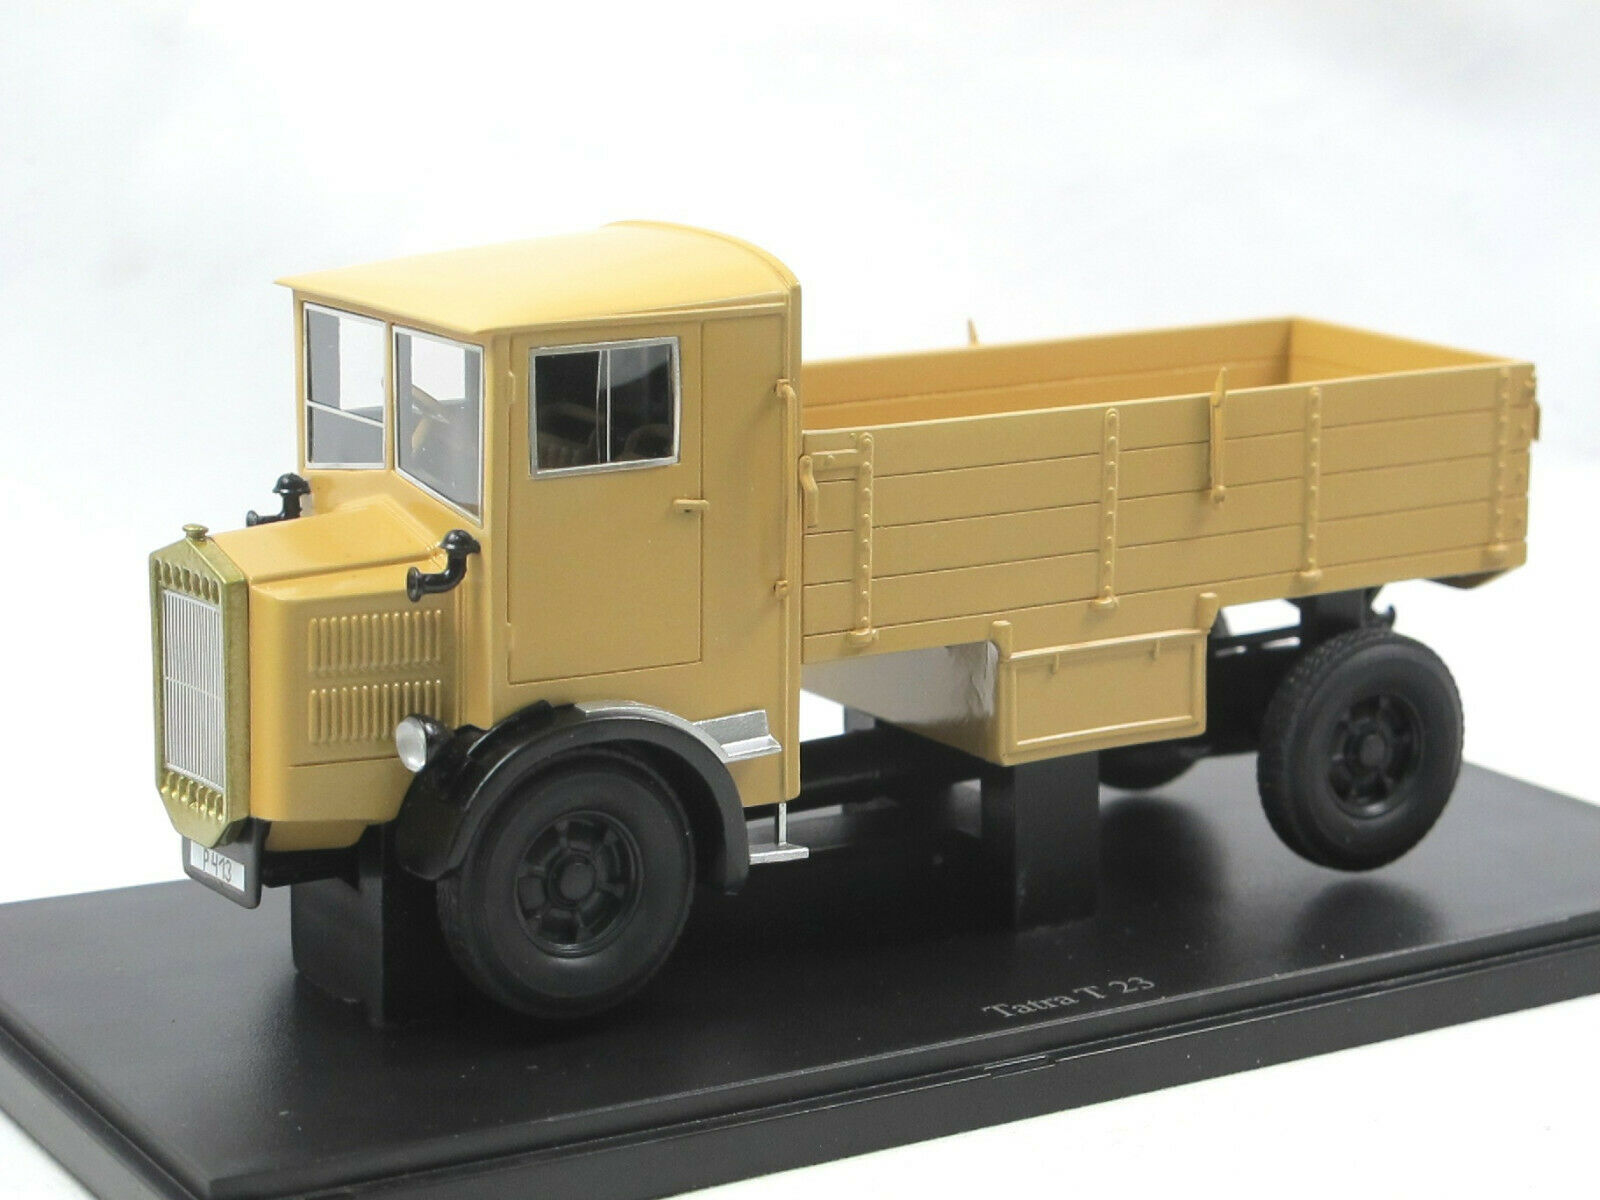 Autocult 11010 - 1931 TATRA t23 Camions Voitures classiques - 1 43 limited edition